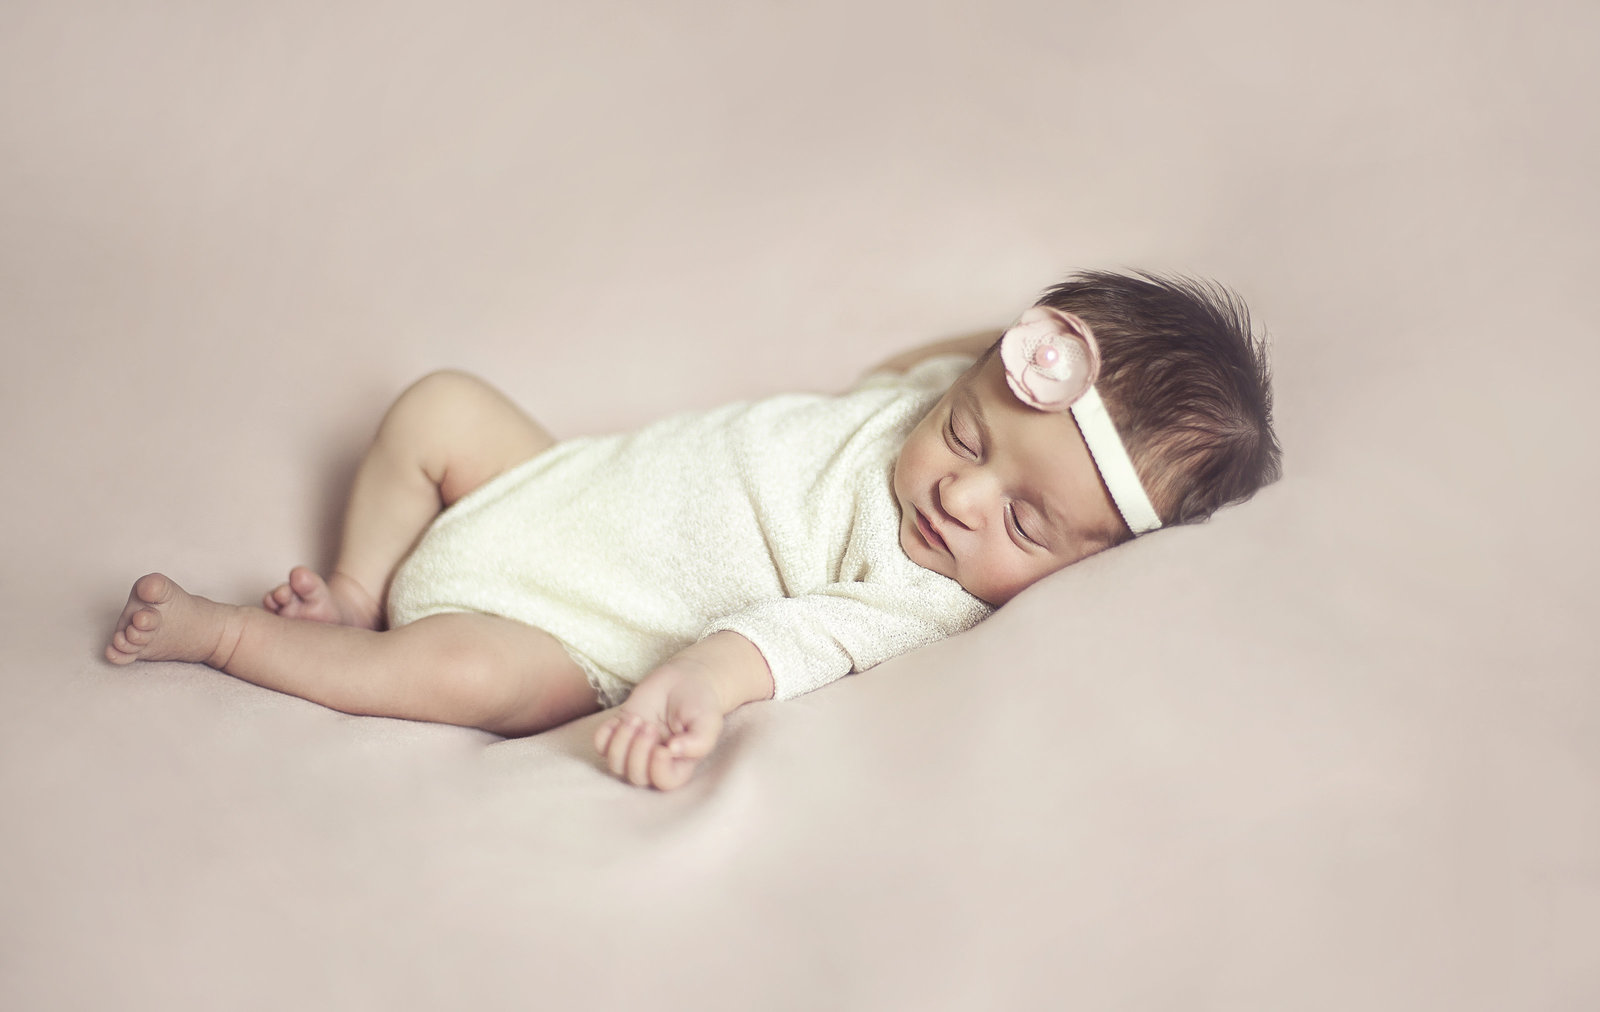 newborn photographer in Stockport, Cheshire